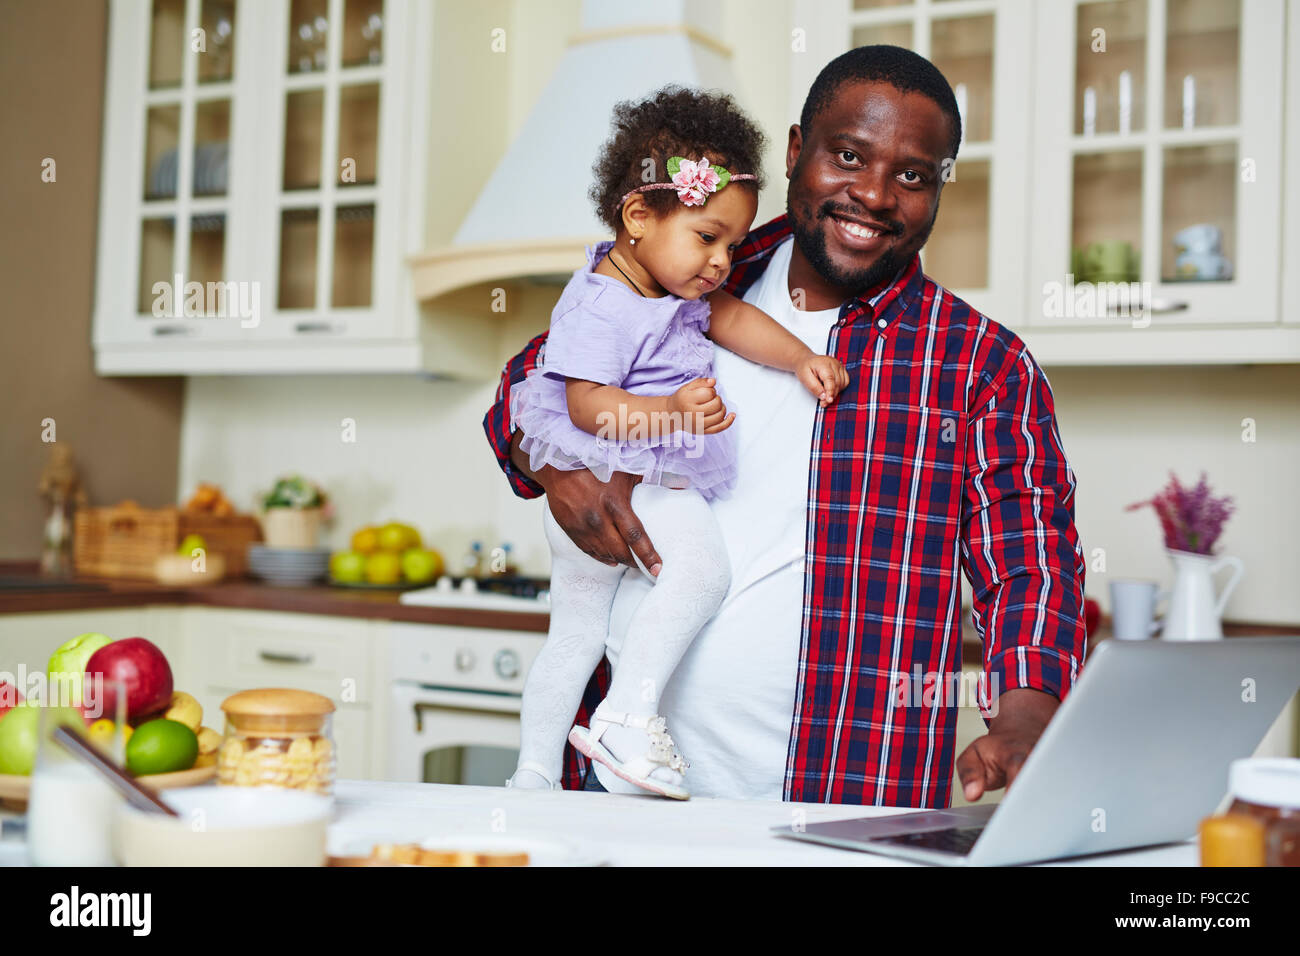 Young man with his small daughter networking in the kitchen - Stock Image